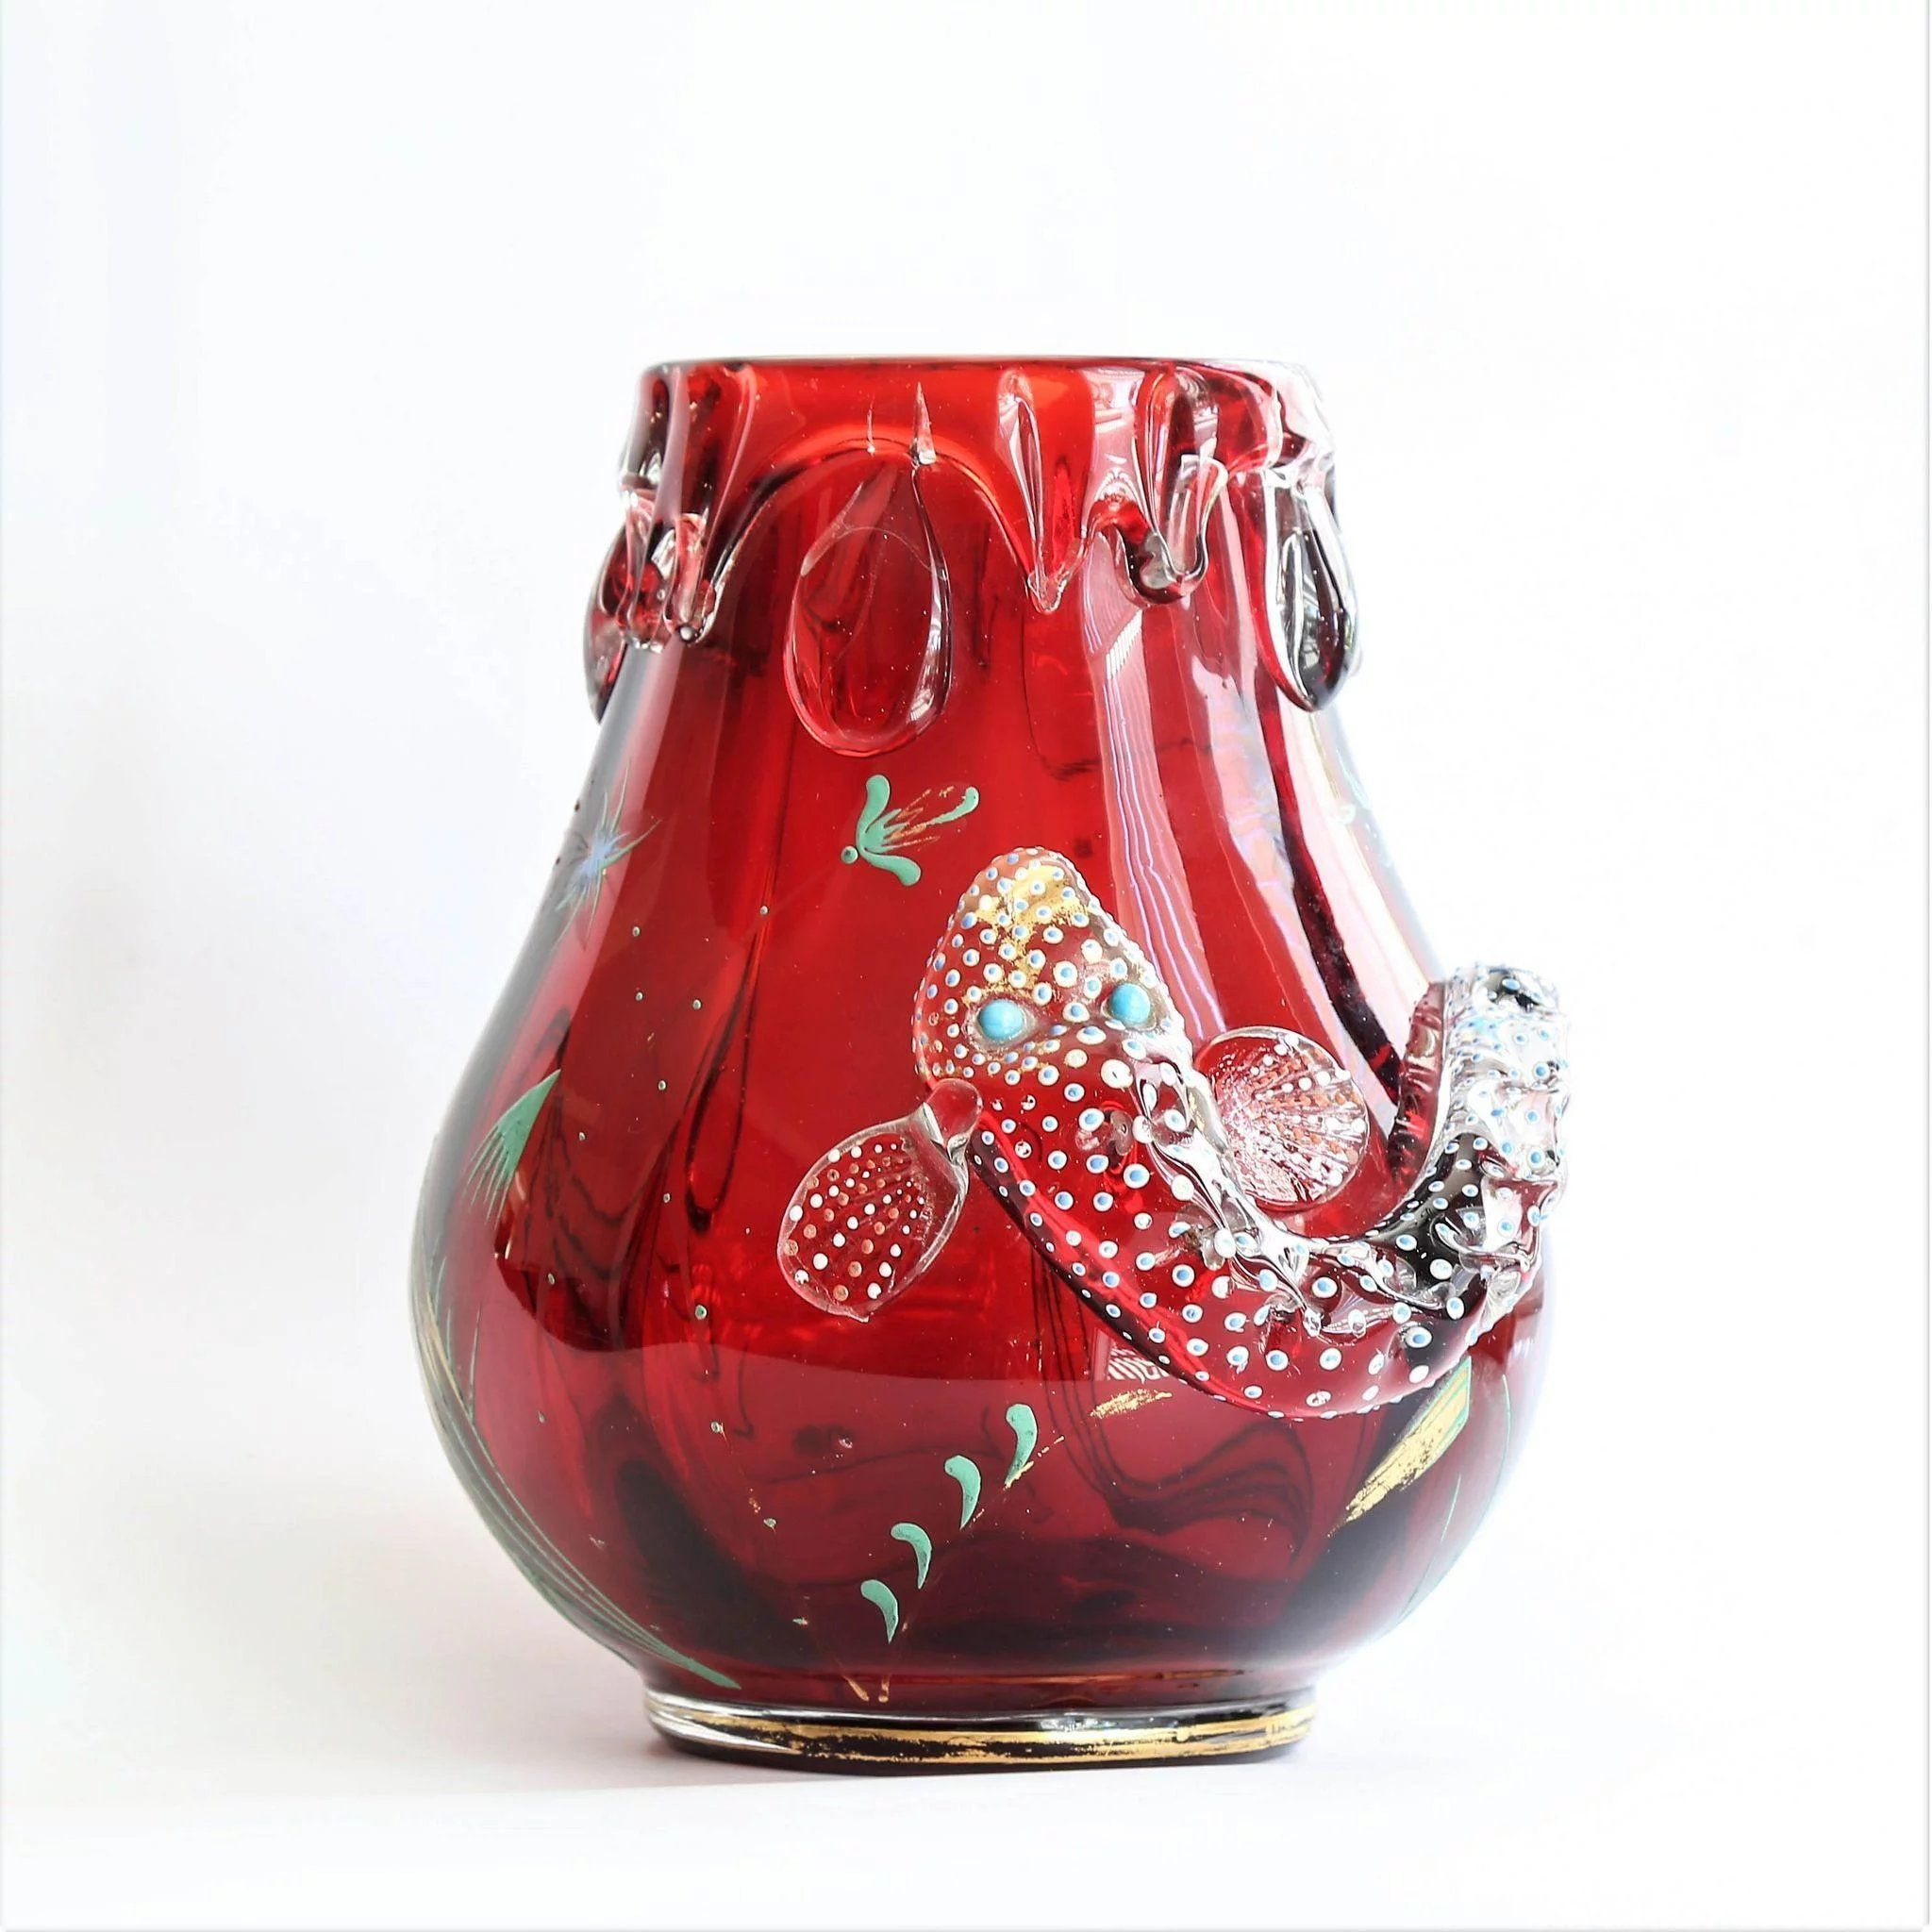 Fish Design Vase Of Rare Circa 1900 Moser Ruby Red Vase with Enameled Fish In 2018 within Title Rare Circa 1900 Moser Ruby Red Vase with Enameled Fish Price 995 Usd Category Antiquesby Period Styleart Nouveauantique Art Glass Antique